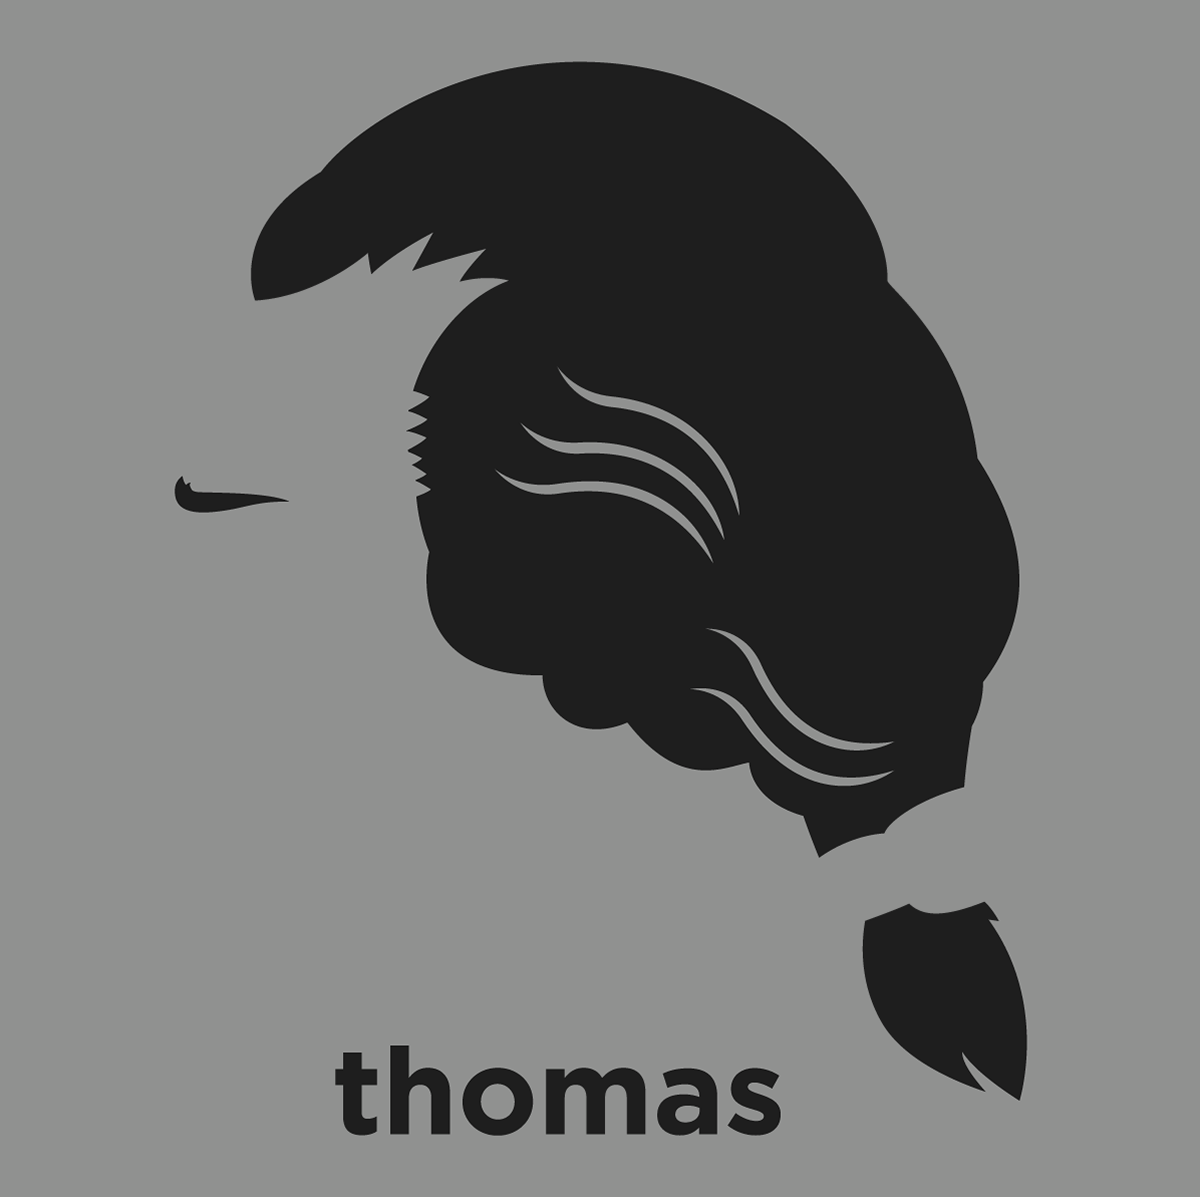 hight resolution of a t shirt with a minimalist hair based illustration of thomas jefferson american founding father the principal author of the declaration of independence